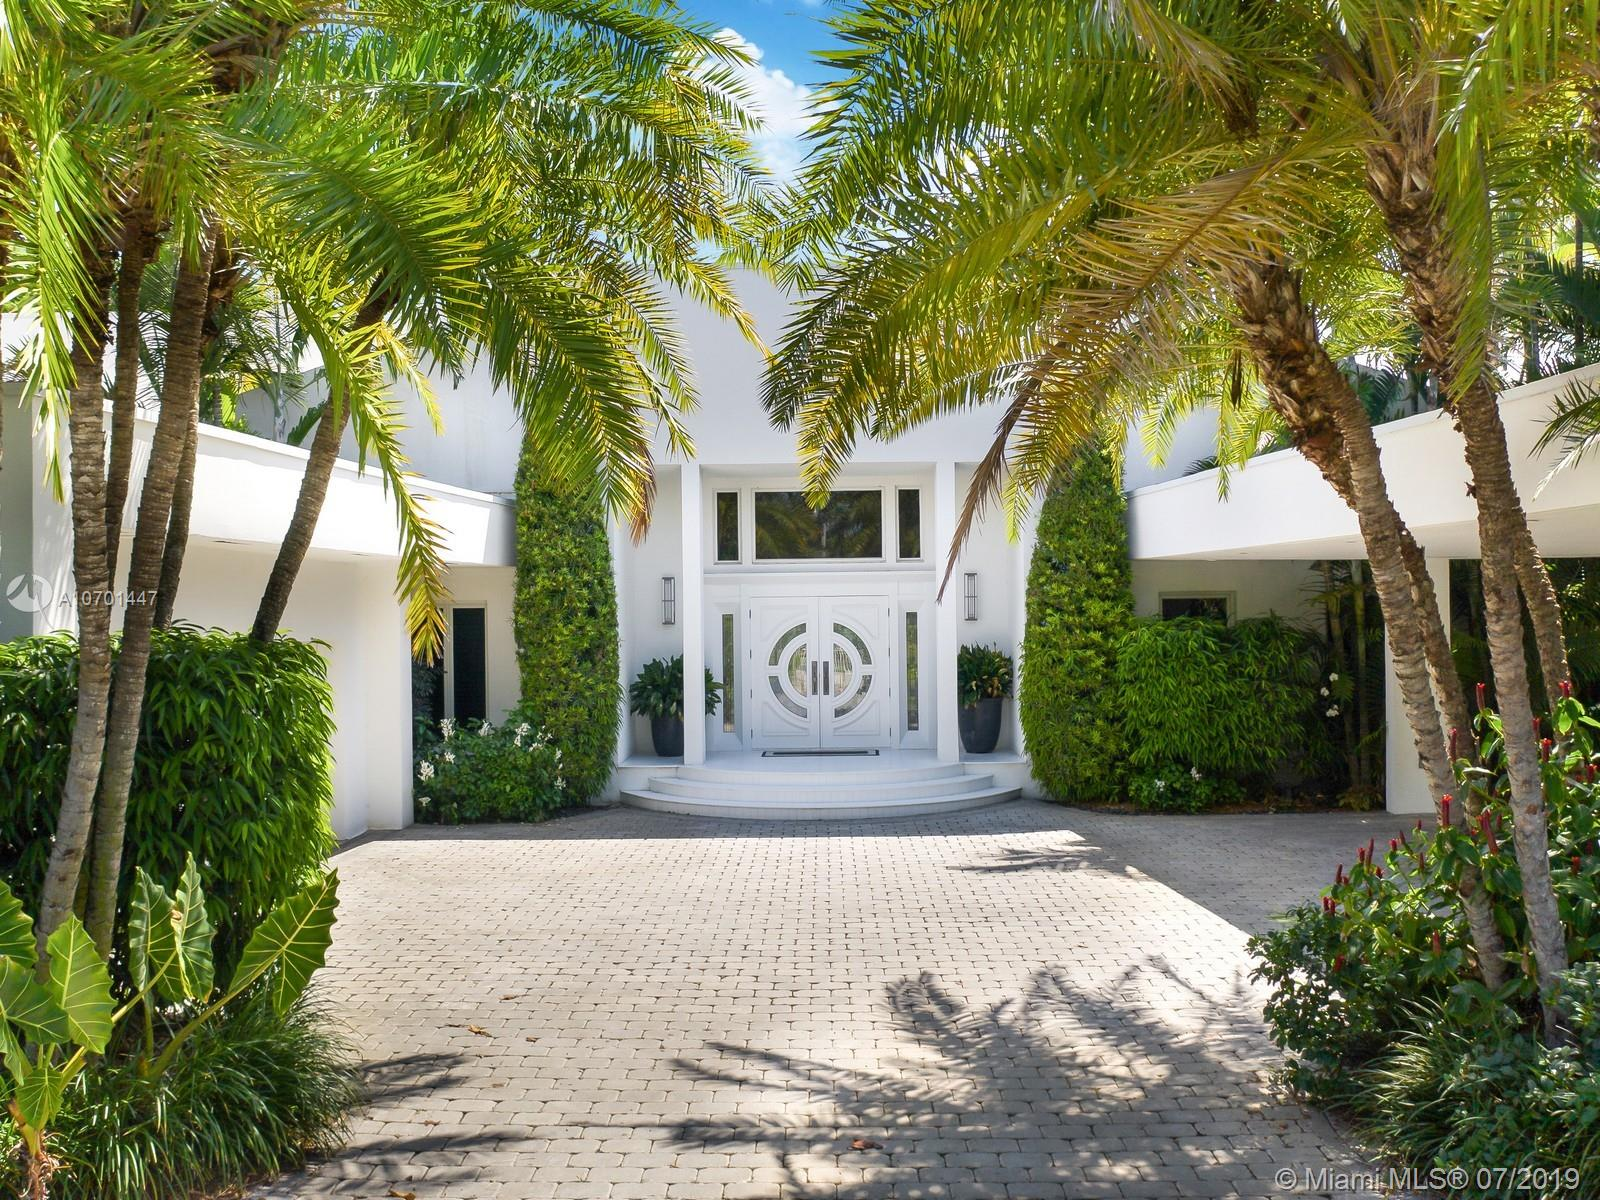 This Spectacular Residence Has Breathtaking Views With Approximately 100 Feet Of Waterfront On Hurricane Harbor. The Property Includes A Grandfathered-In Concrete Dock And Pilings Suitable For Watercraft Up To 85 Feet. <Br /><Br />The House Has A Wonderful Floor Plan With Incredible Open Spaces And Amazing Natural Light Throughout. It Has 6 Bedrooms And 6 Bathrooms.